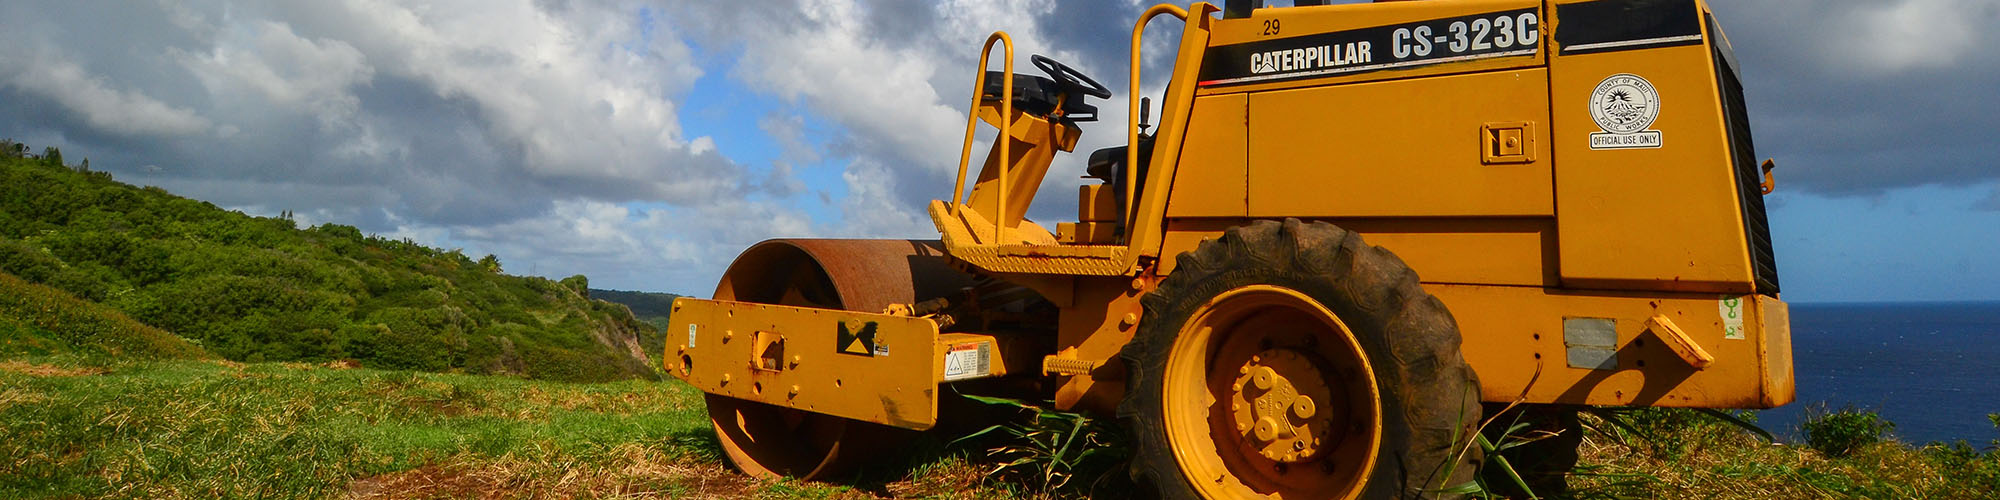 LEASING MANUFACTURING AND AGRICULTURAL EQUIPMENT